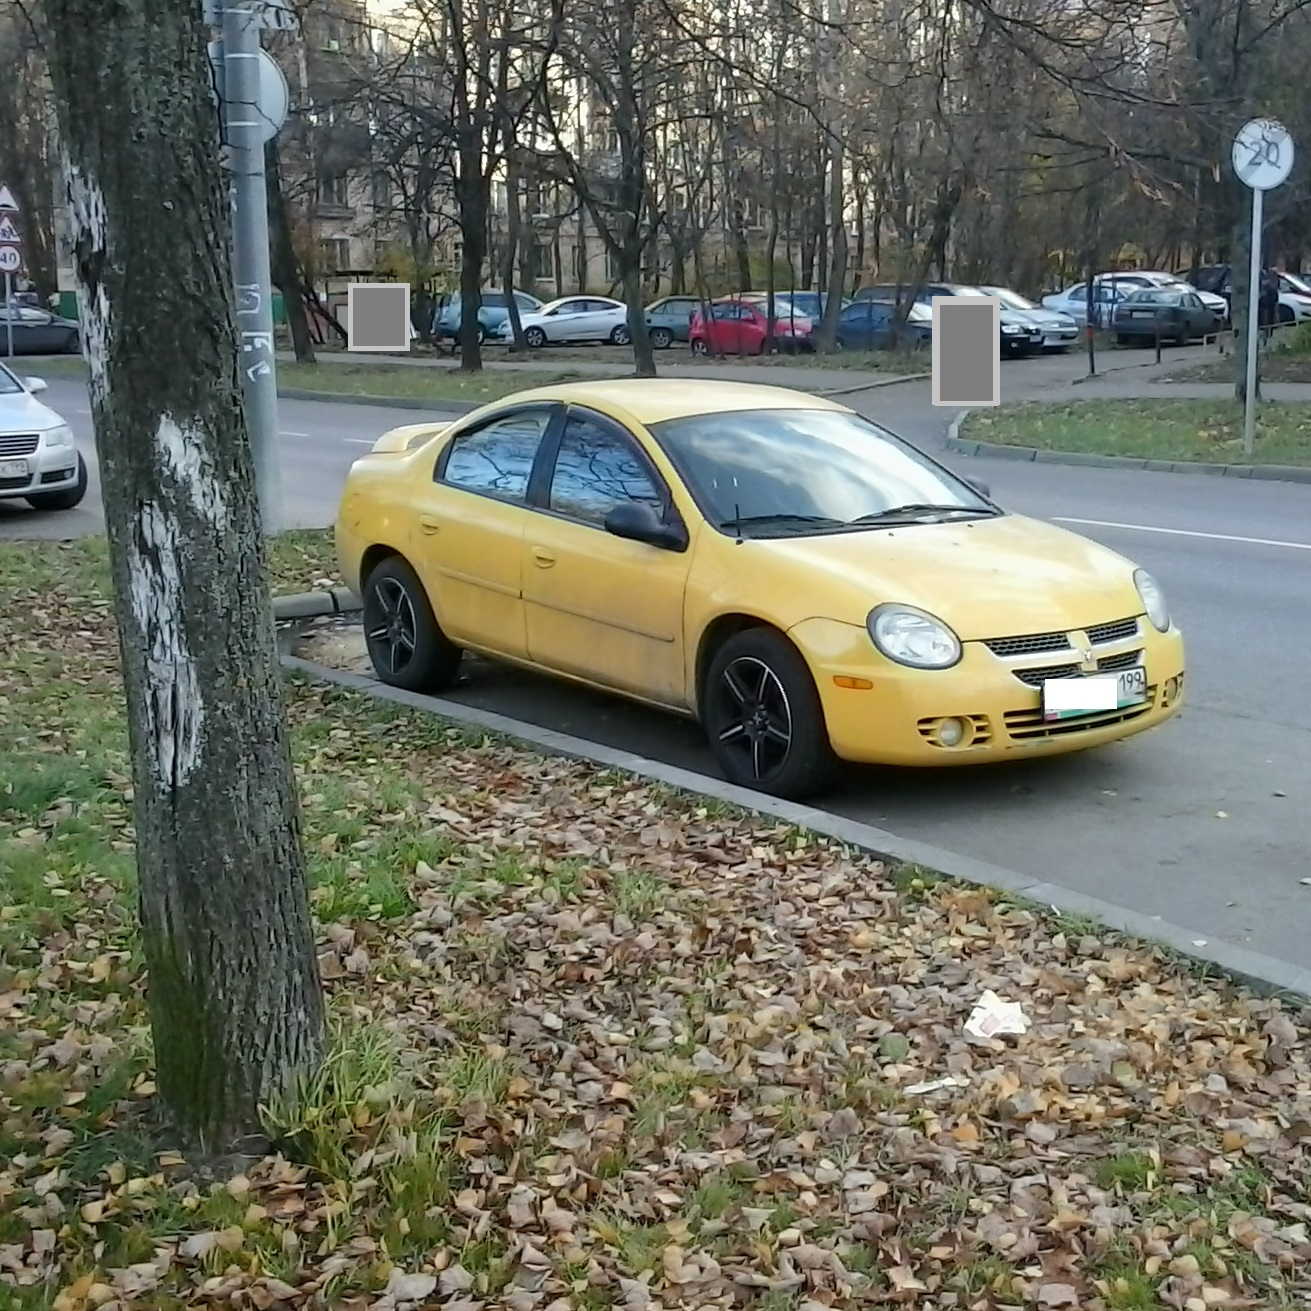 Spotted...cars in Moscow: 2003 Dodge Neon